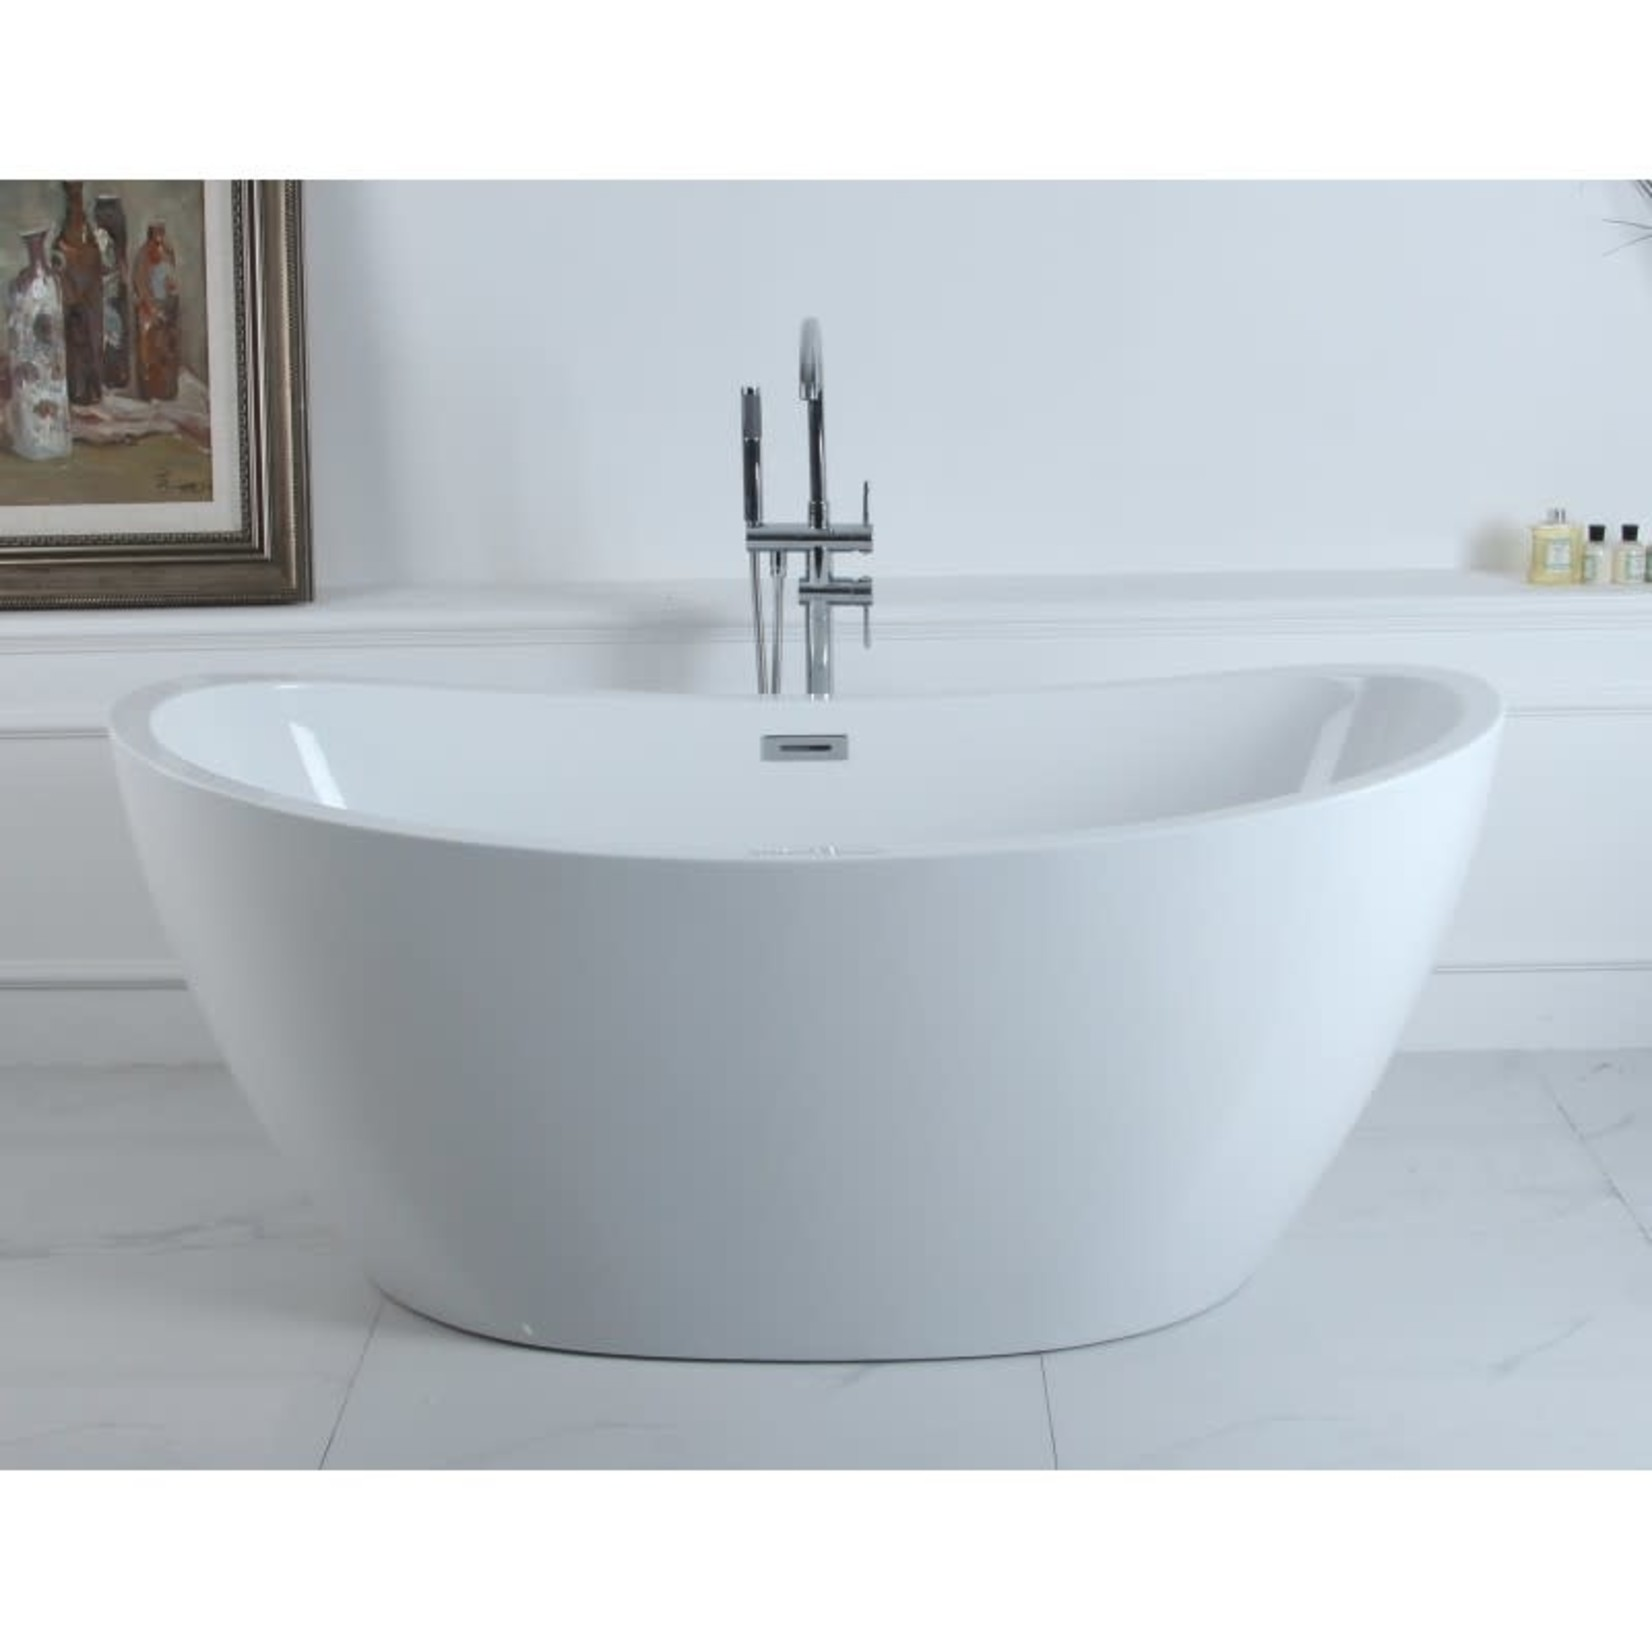 Amon 67 '' freestanding bathtub white DI-02588